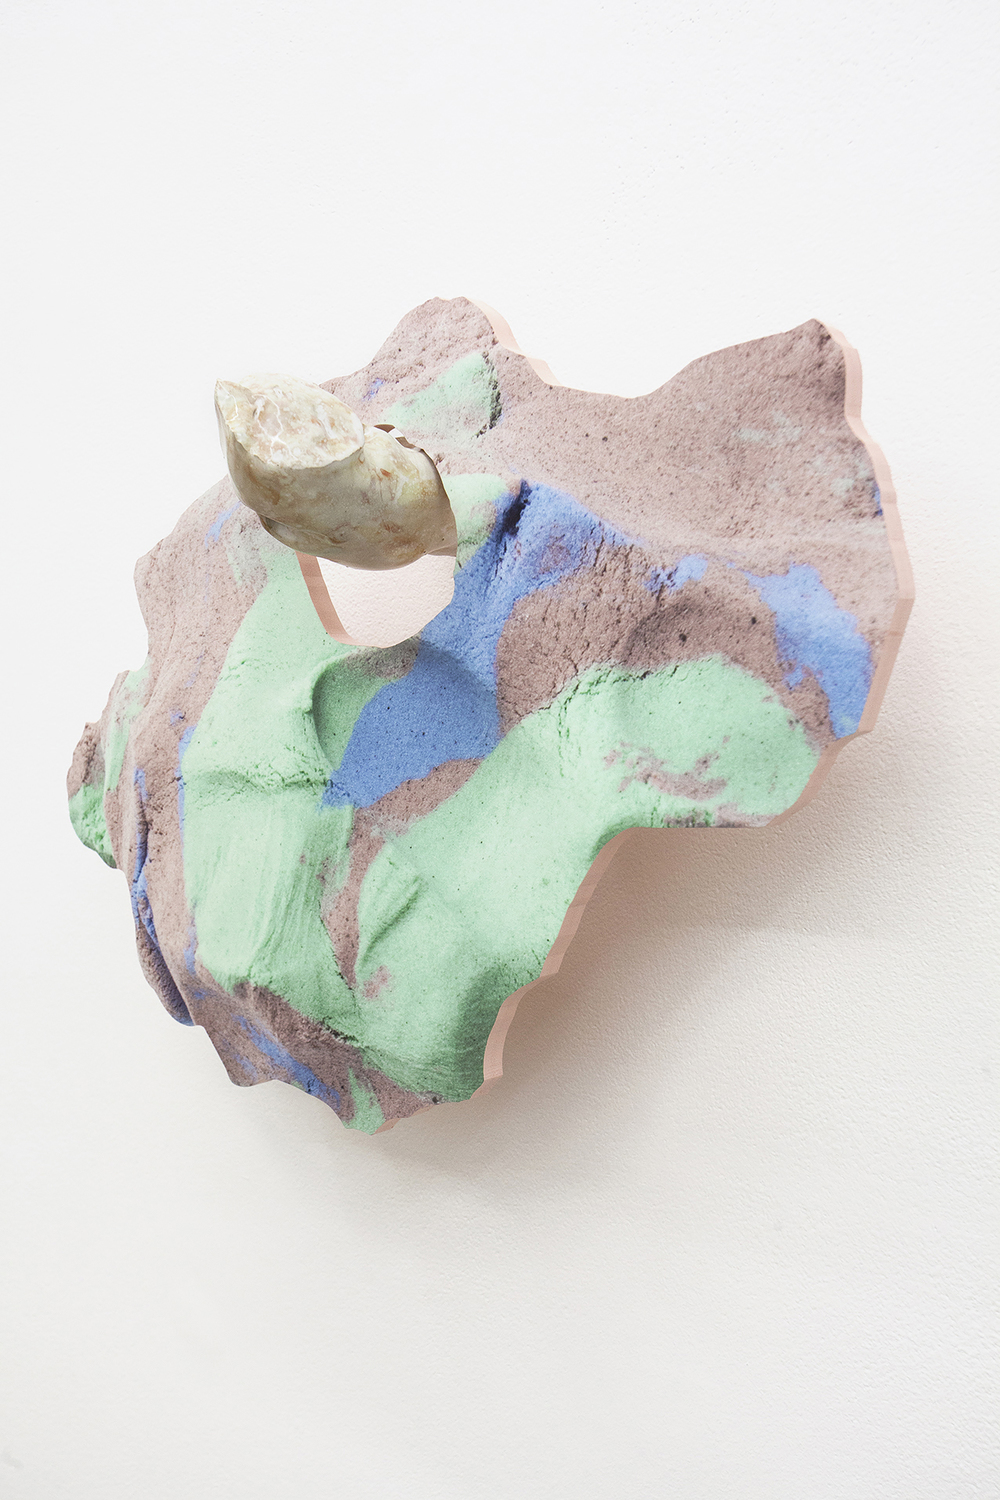 Soft Inquiry II   2015  Ceramic and archival inkjet print on PVC  14 x 19 x 7 in/ 35.6 x 48.3 x 18 cm